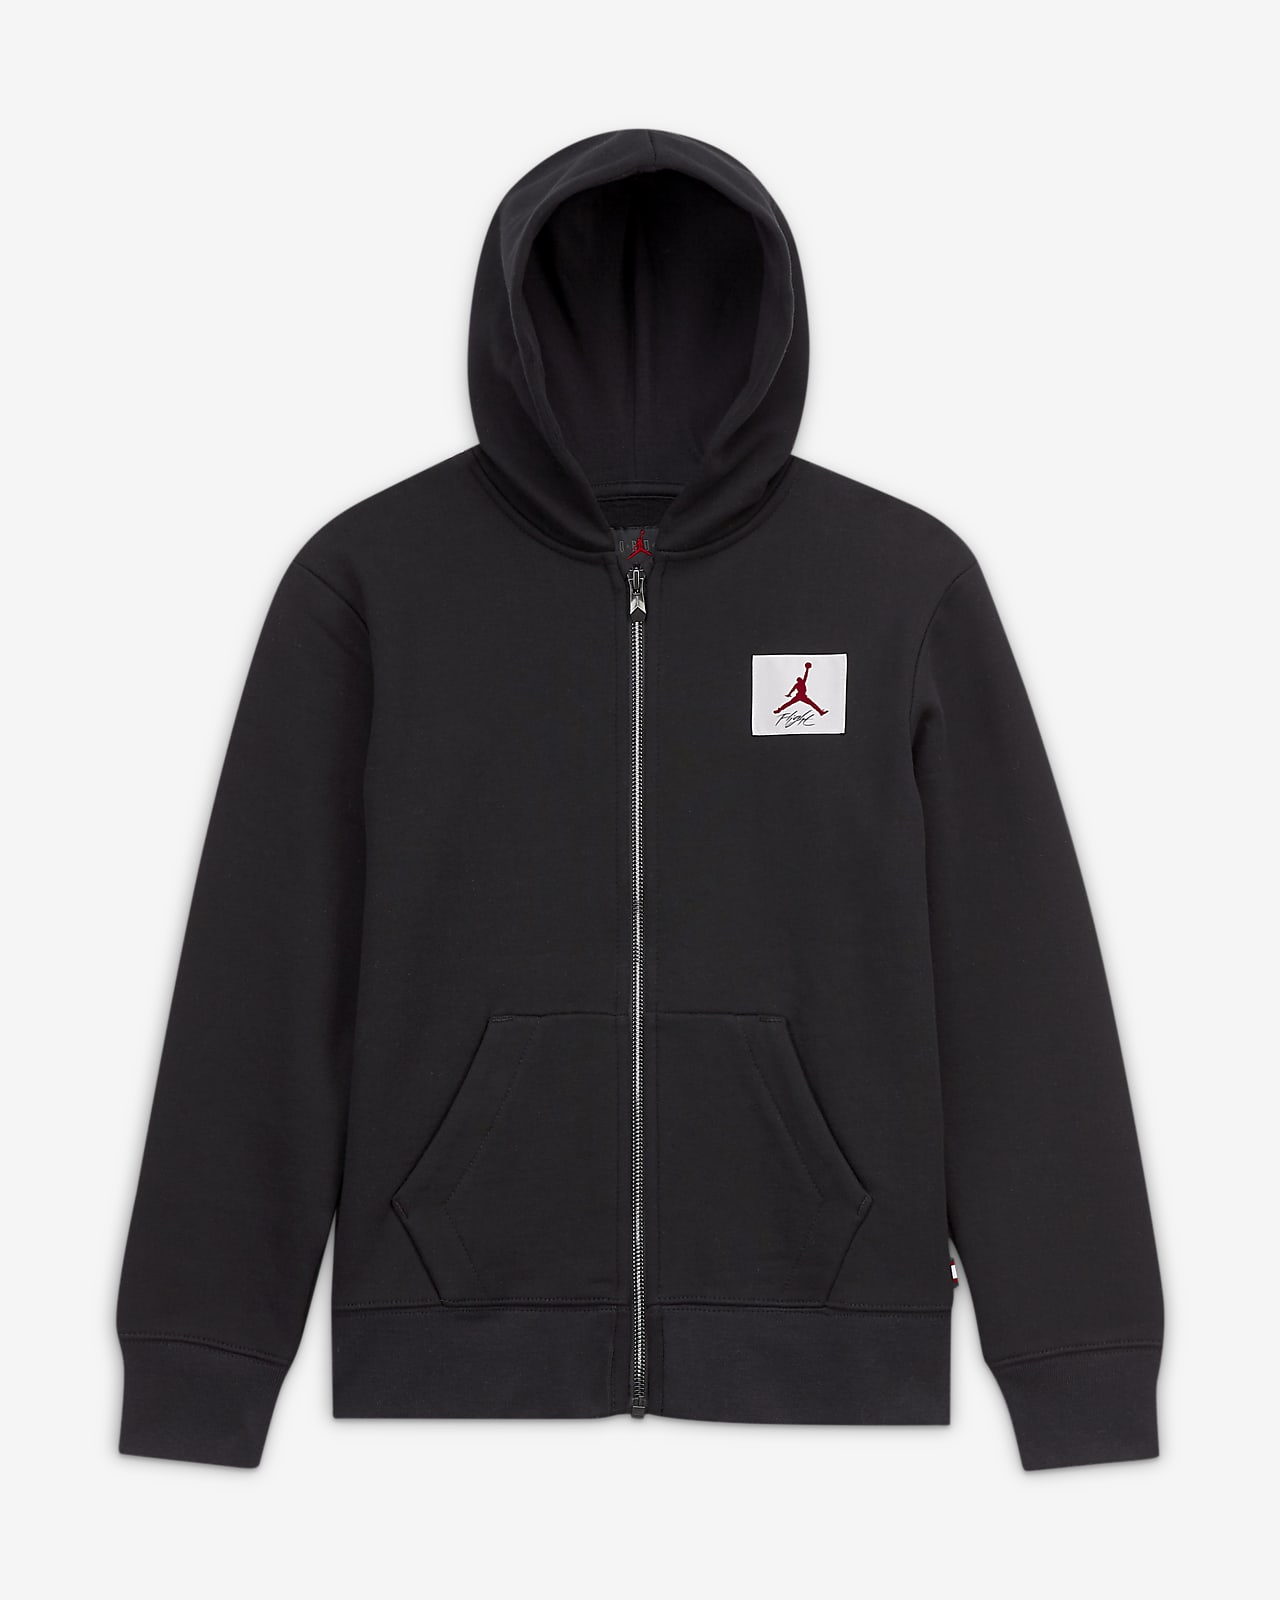 Jordan Big Kids' (Boys') Full-Zip Hoodie